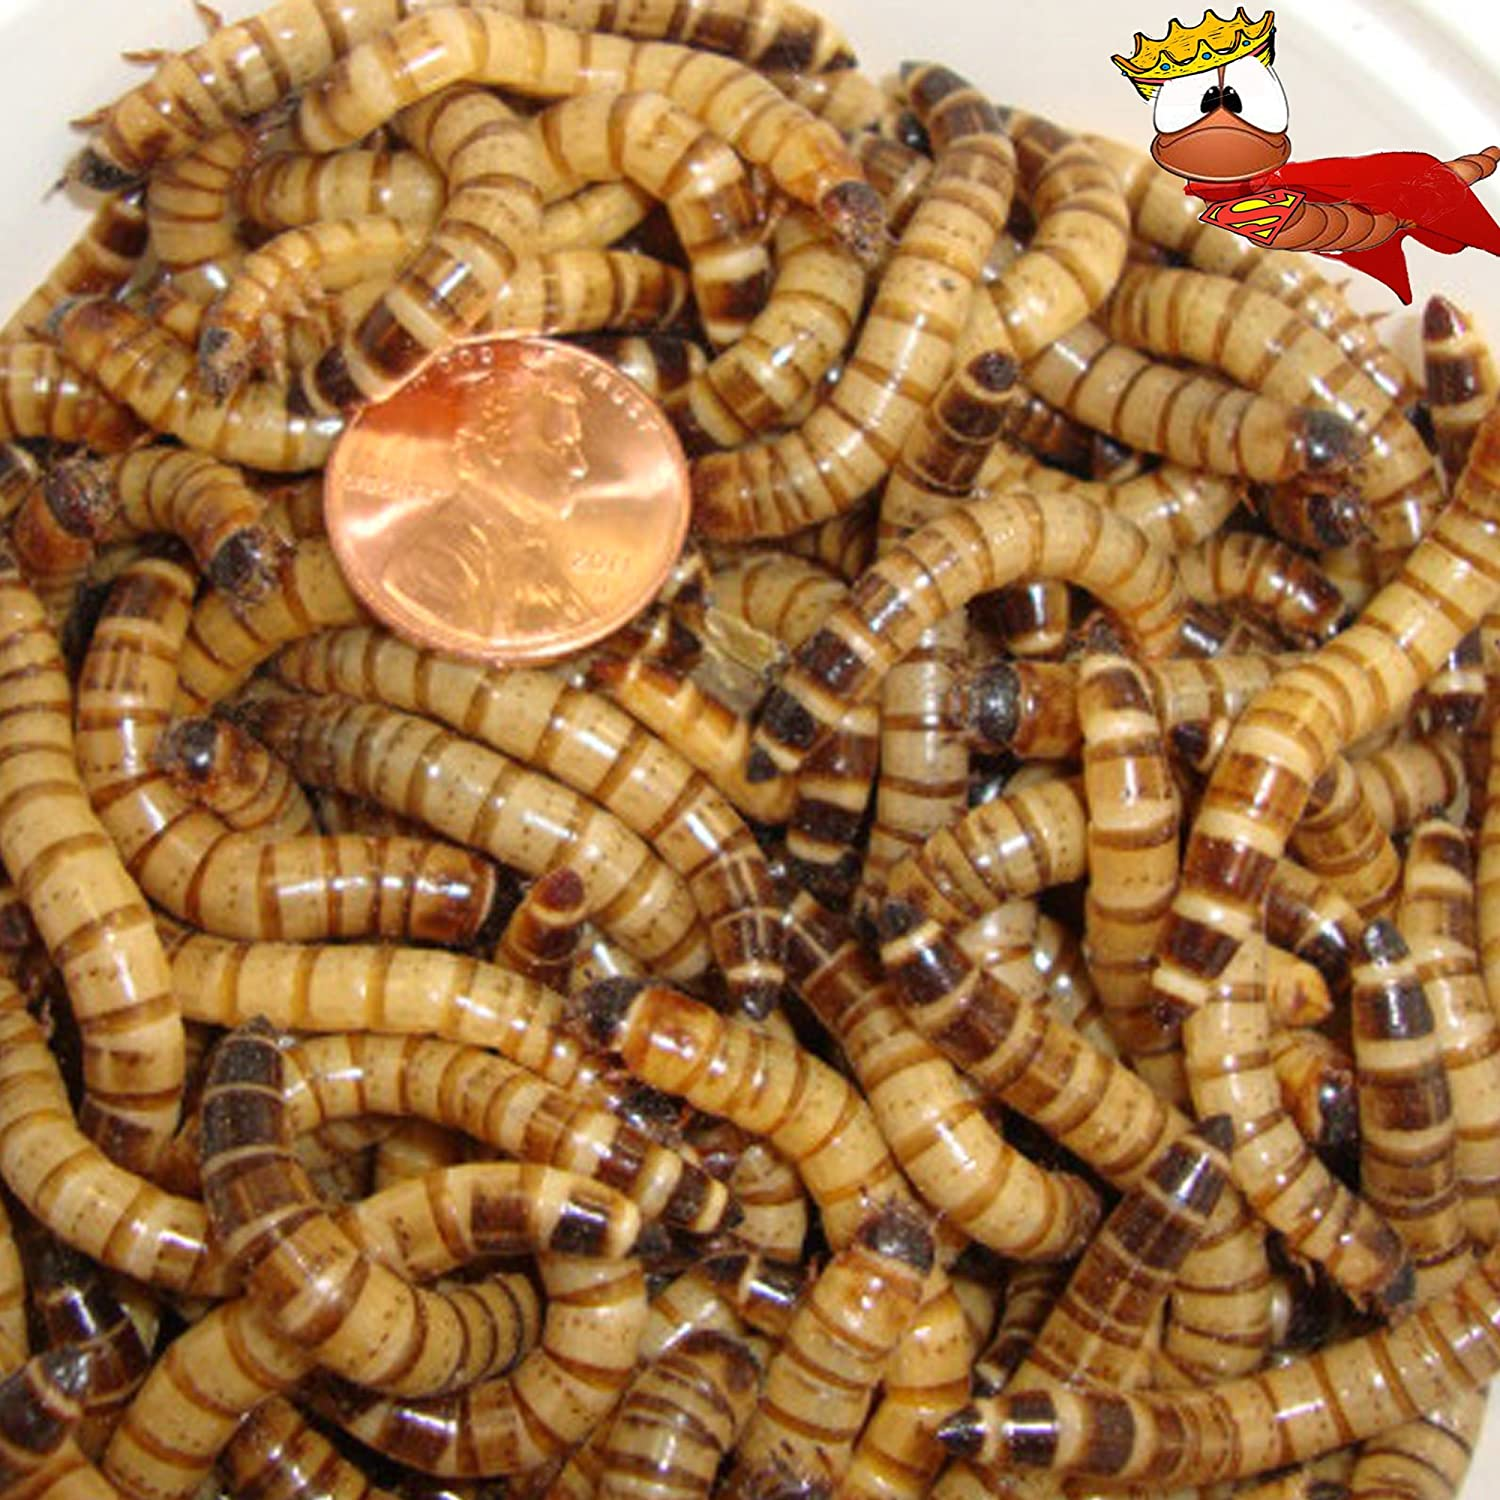 300Ct leben Superworms, Feed Reptile, Birds, Fishing Best Bait (Free Shipping)